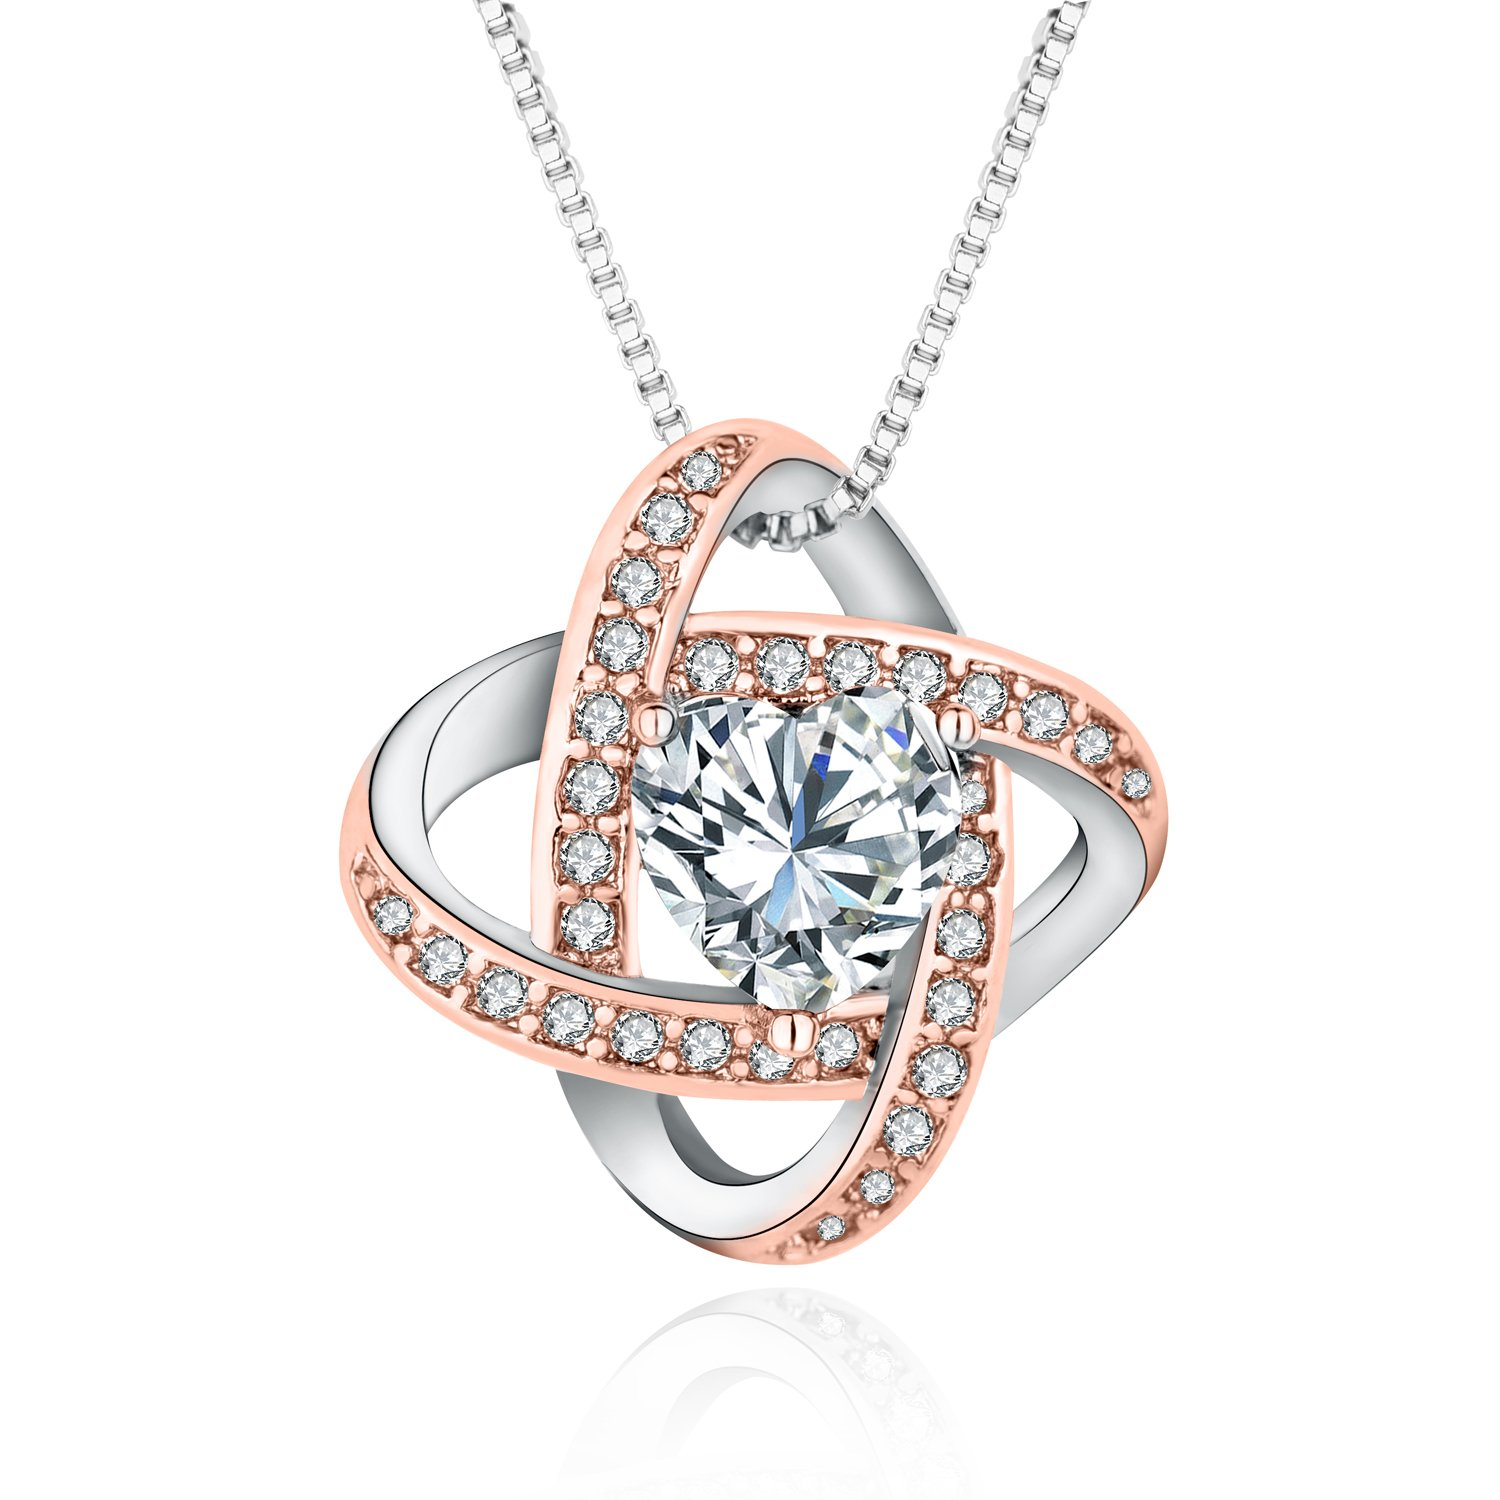 Luomart Celtic Love Knot Necklace Two-Tone Brass Heart Shaped Crystal Pendant Jewelry (Rose Gold&White Gold)